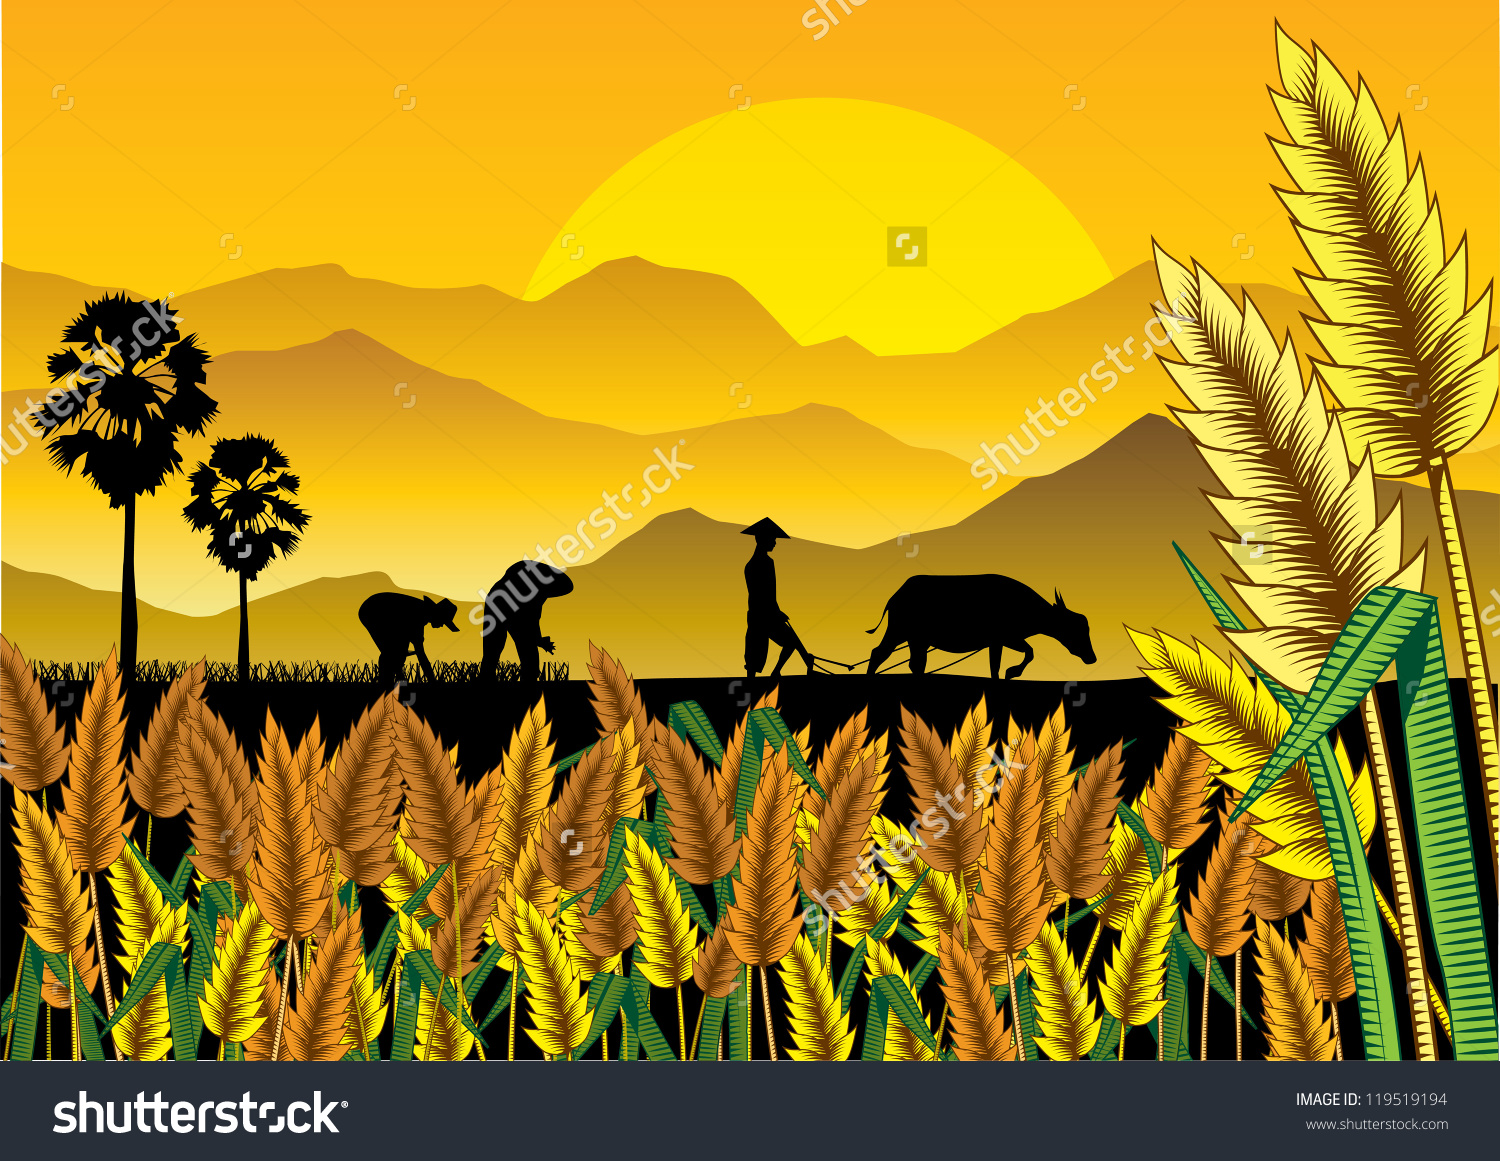 Rice fields clipart.